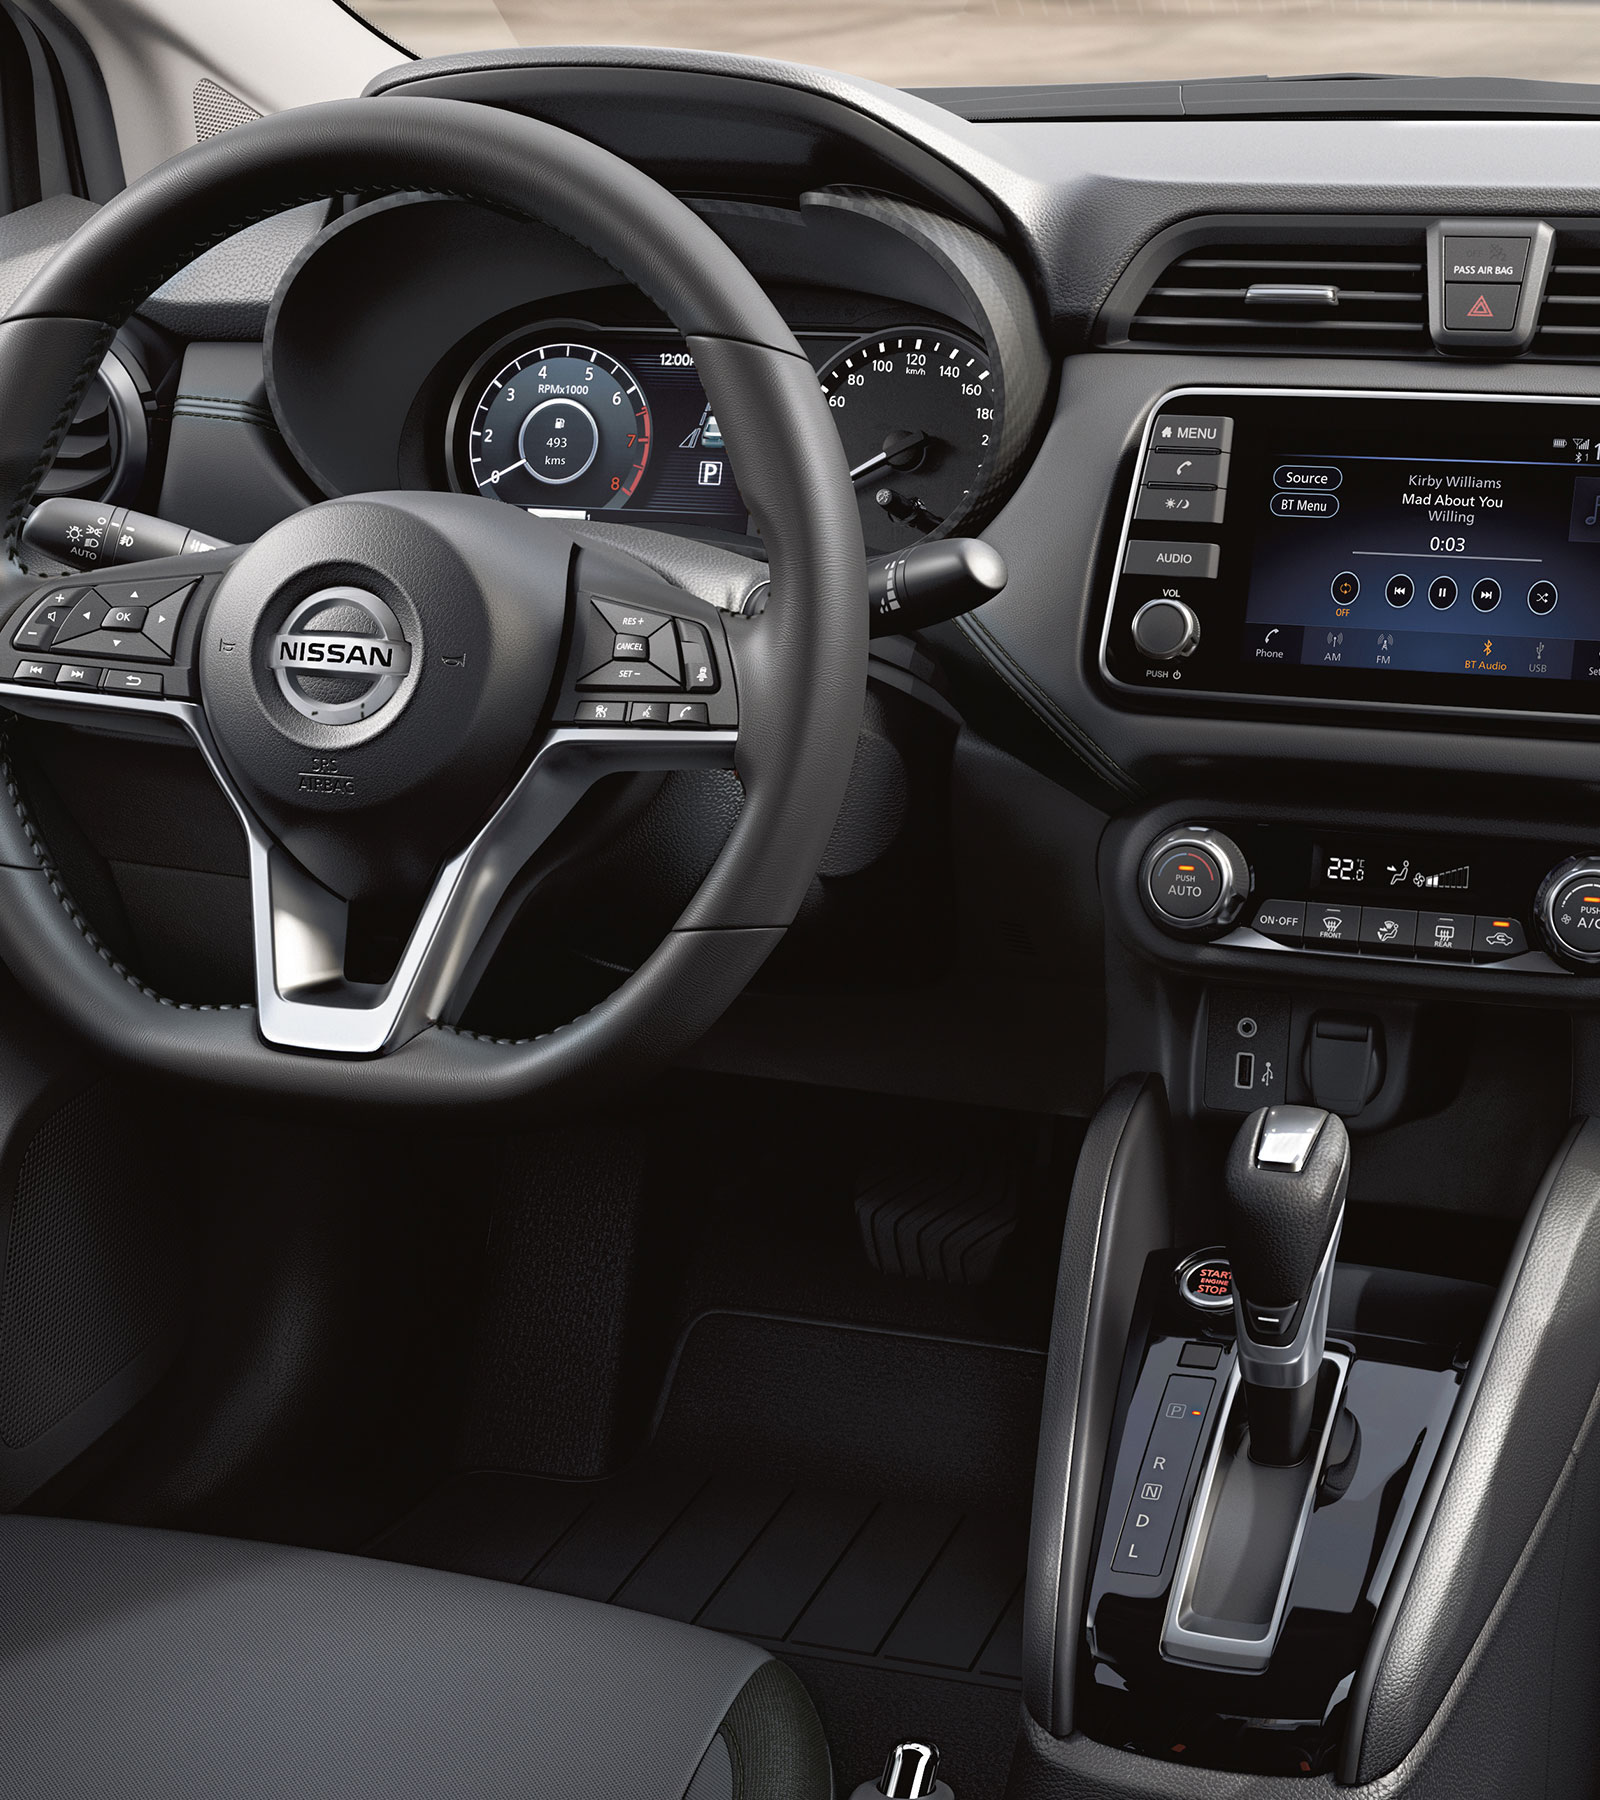 2020 Nissan Sunny D-Shaped Steering Wheel